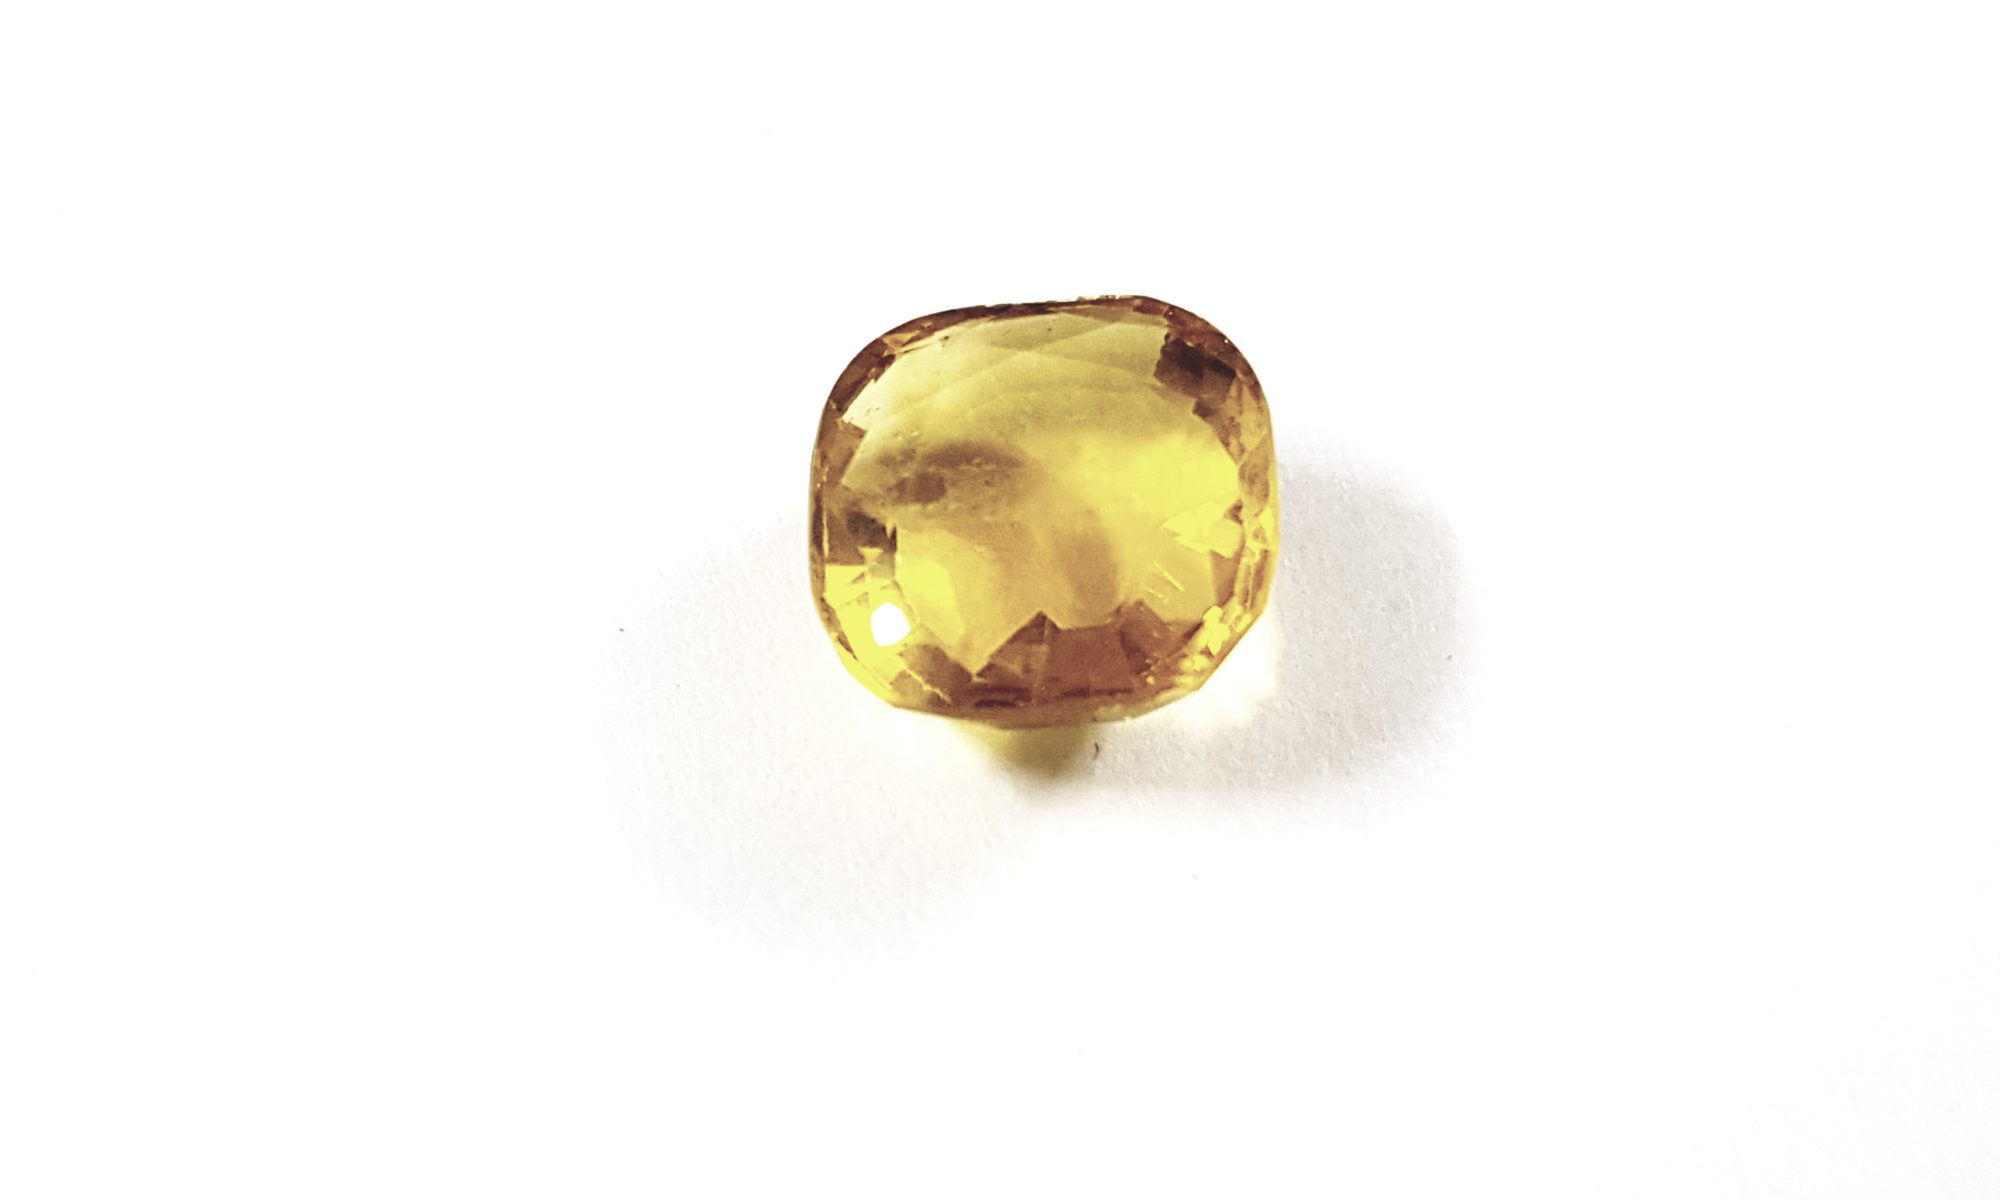 yellow flourspar or yellow florspar - rudraveda.com (5)